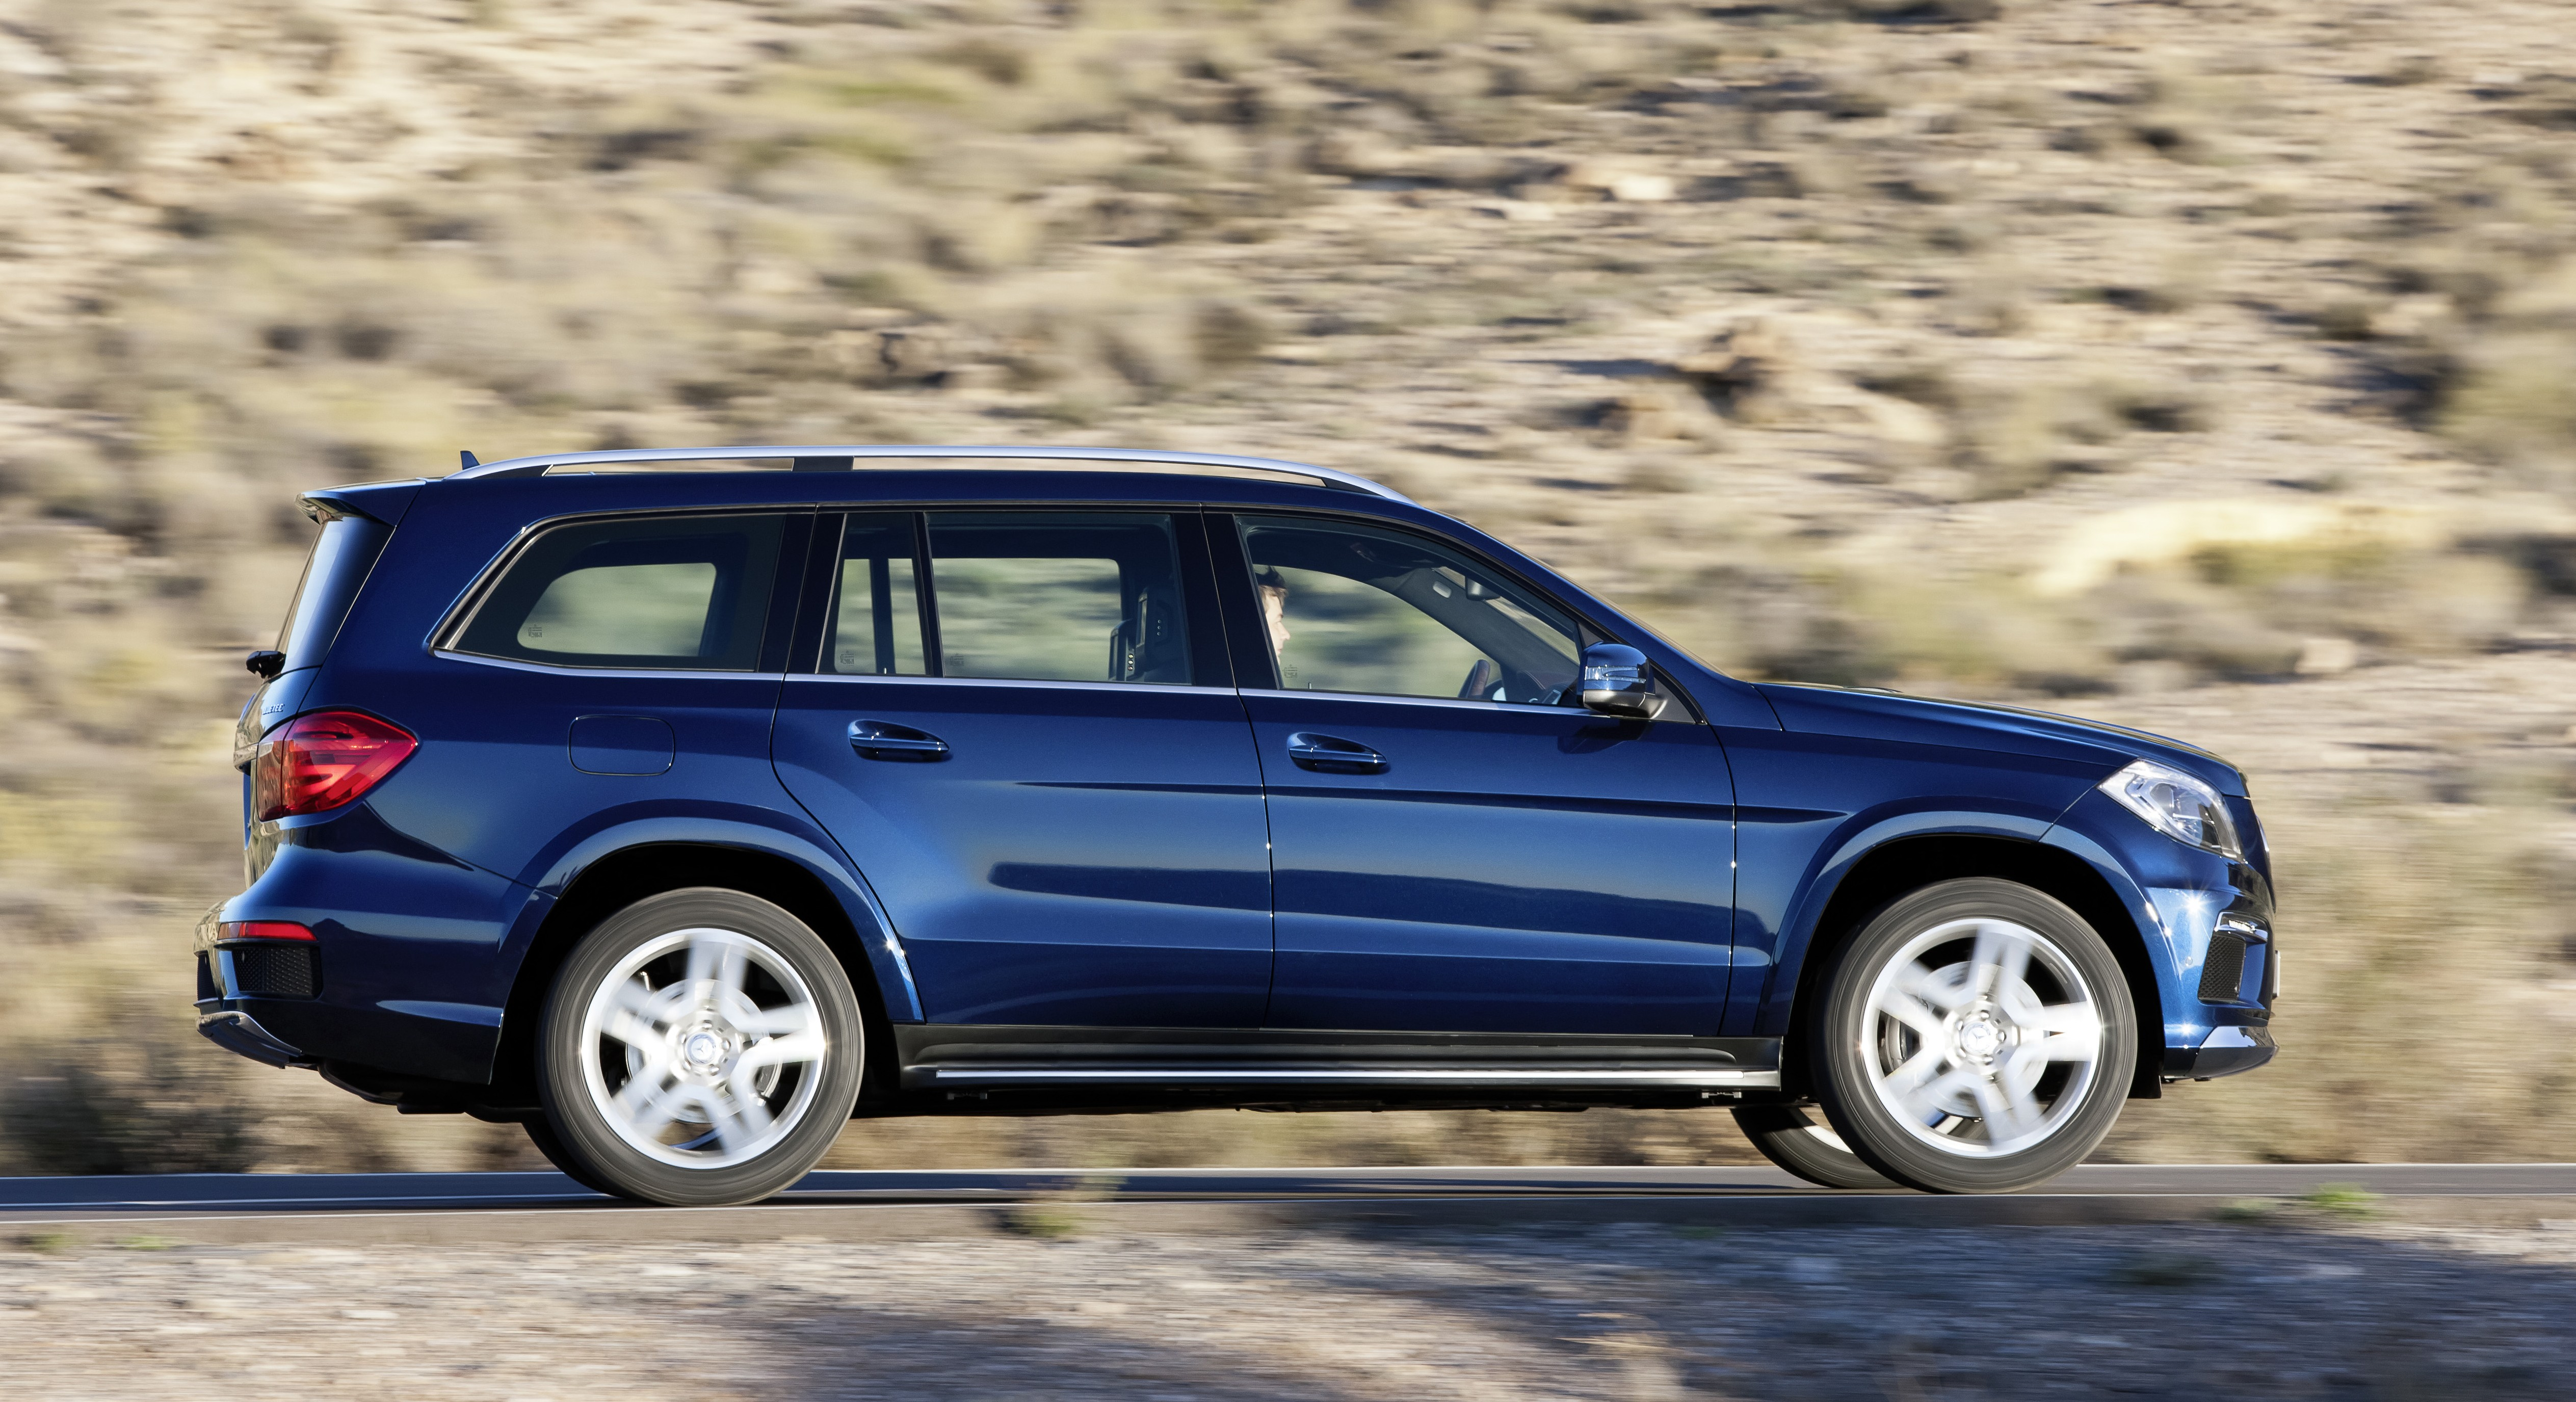 Mercedes benz gl class x166 two petrol and one diesel for Mercedes benz gl class diesel